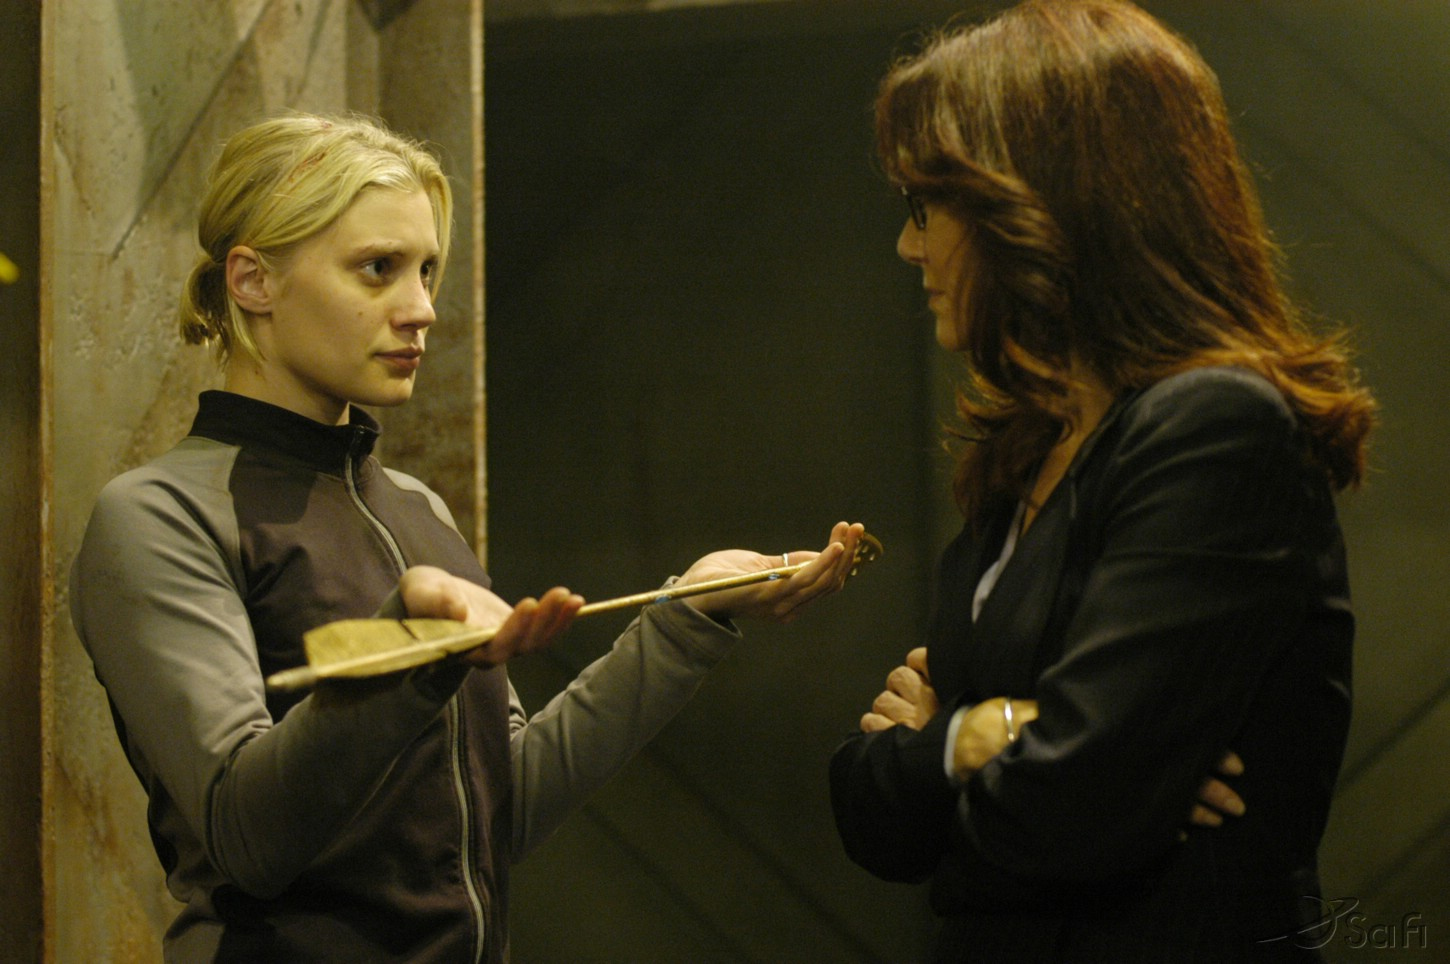 Mary McDonnell and Katee Sackhoff in Battlestar Galactica (2004)